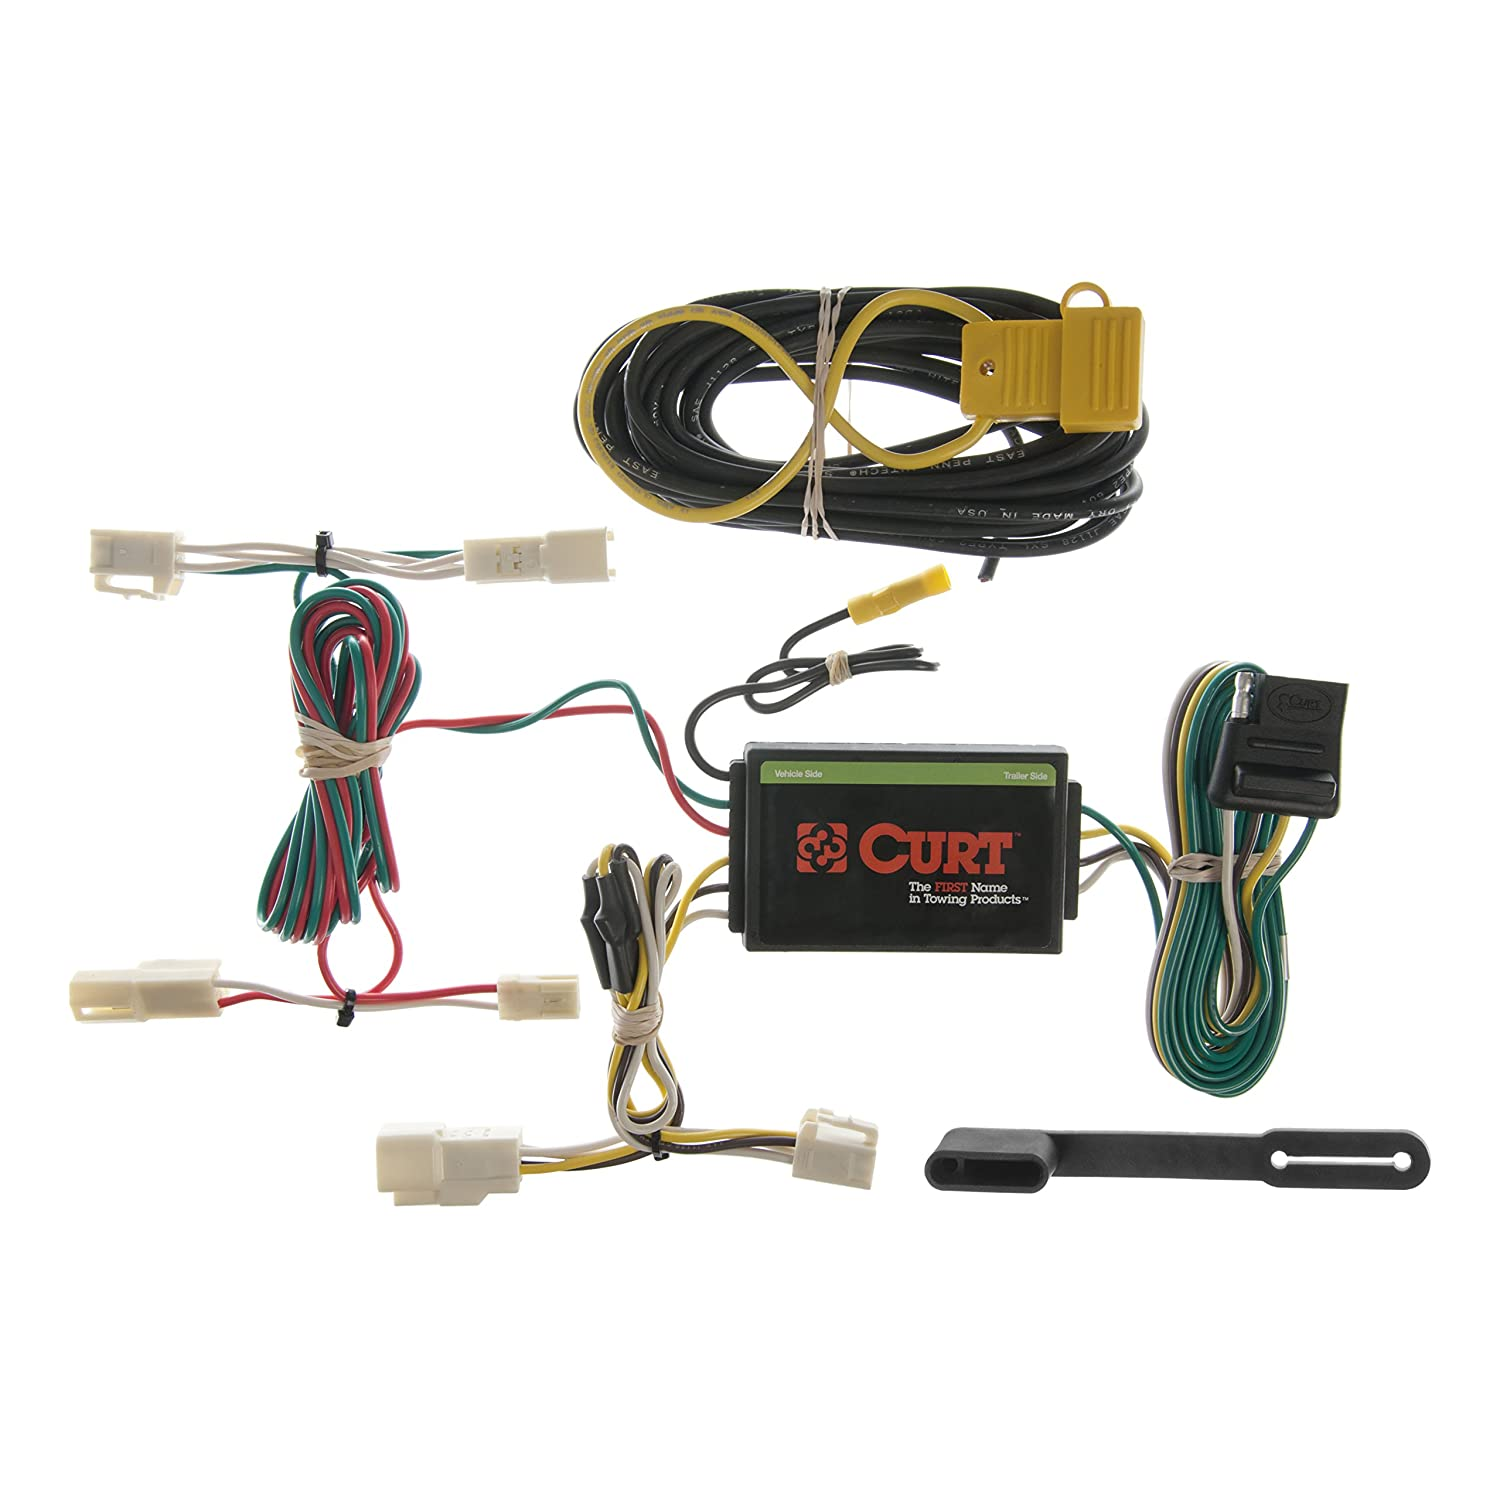 Amazon.com: CURT Class 3 Trailer Hitch Bundle with Wiring for 2010 ...